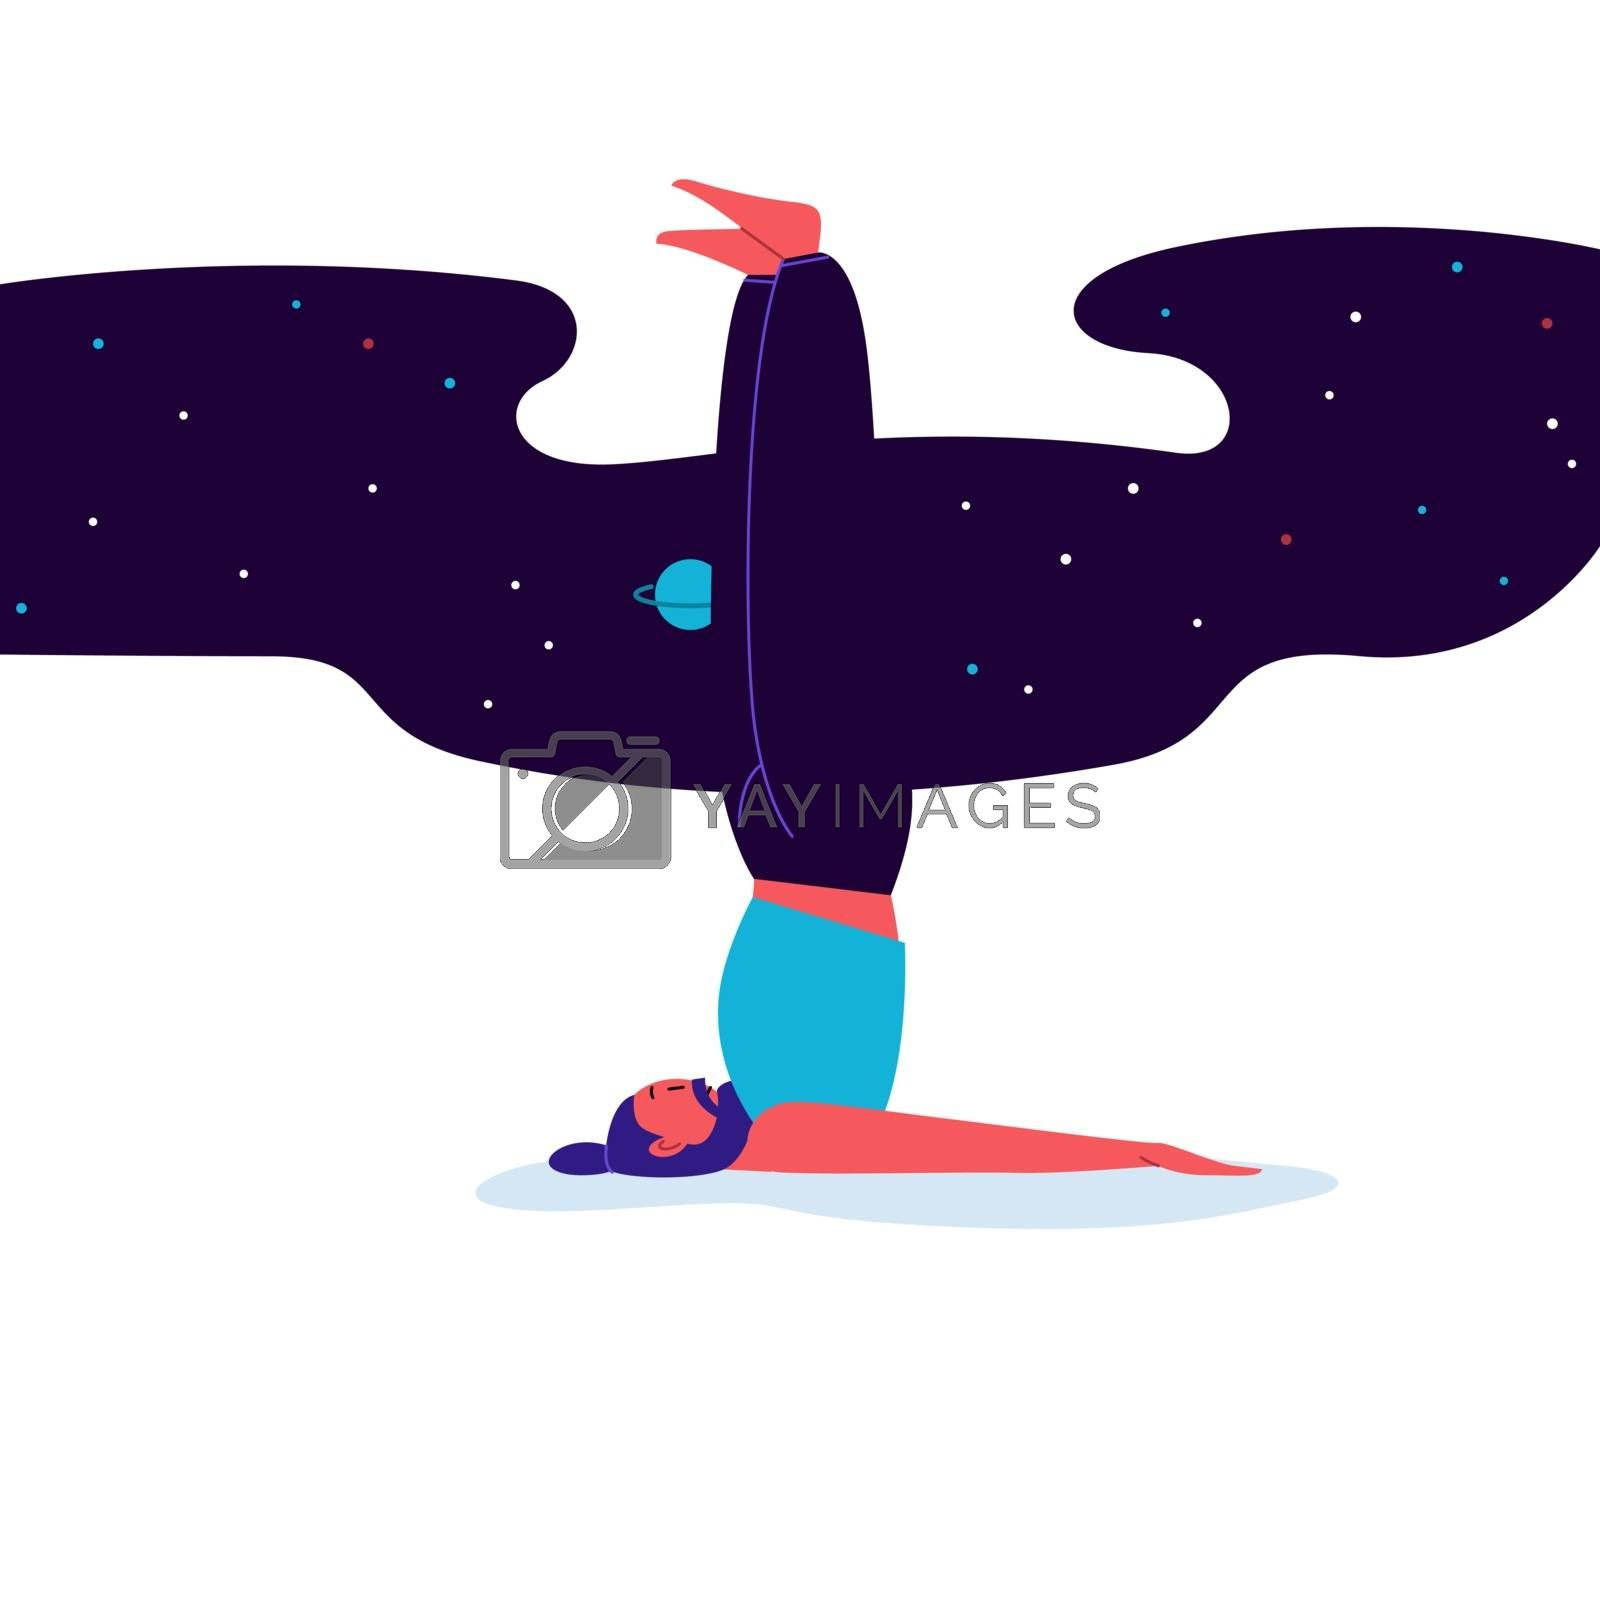 Flat and line illustration of a person practicing yoga with starry sky on the background